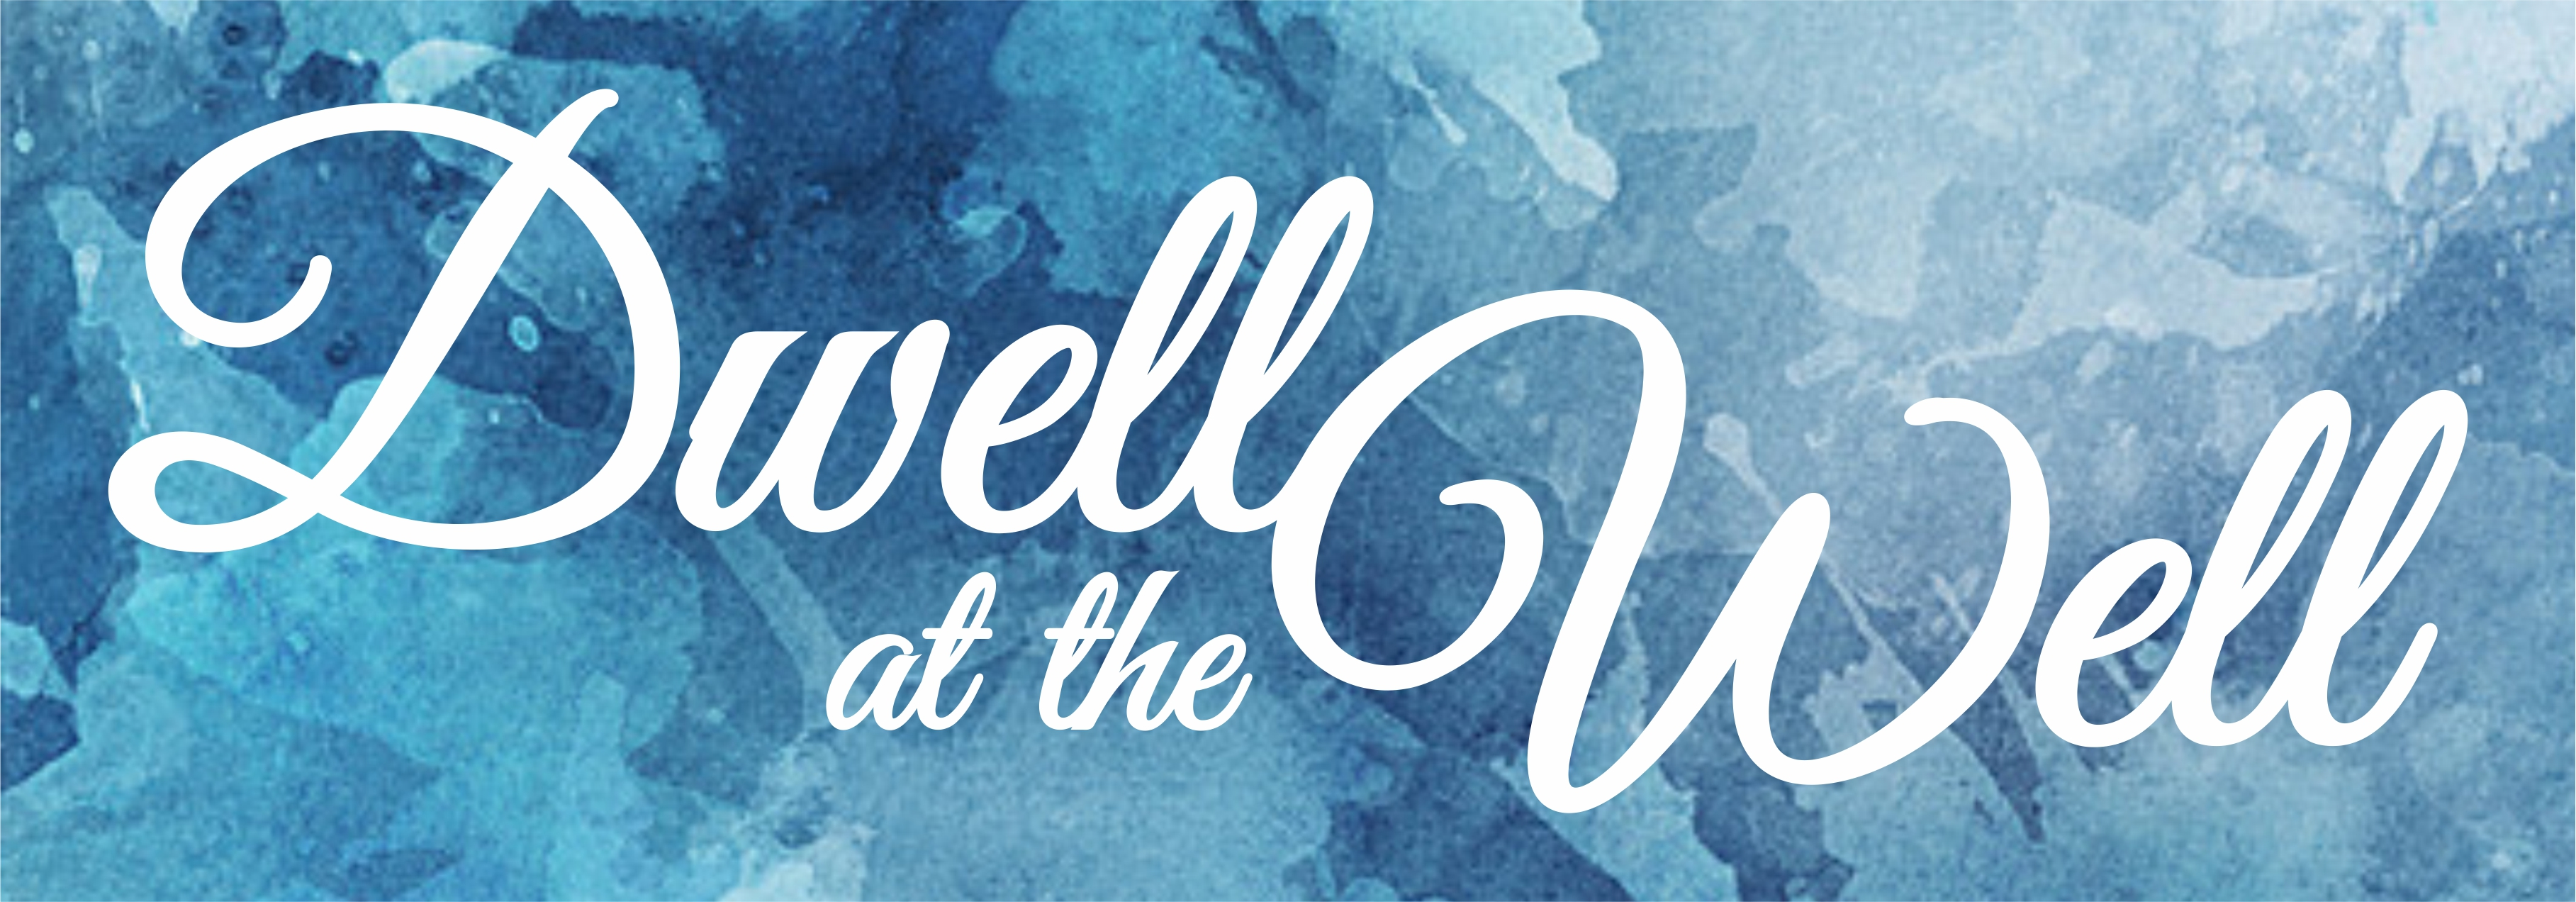 Dwell at the Well